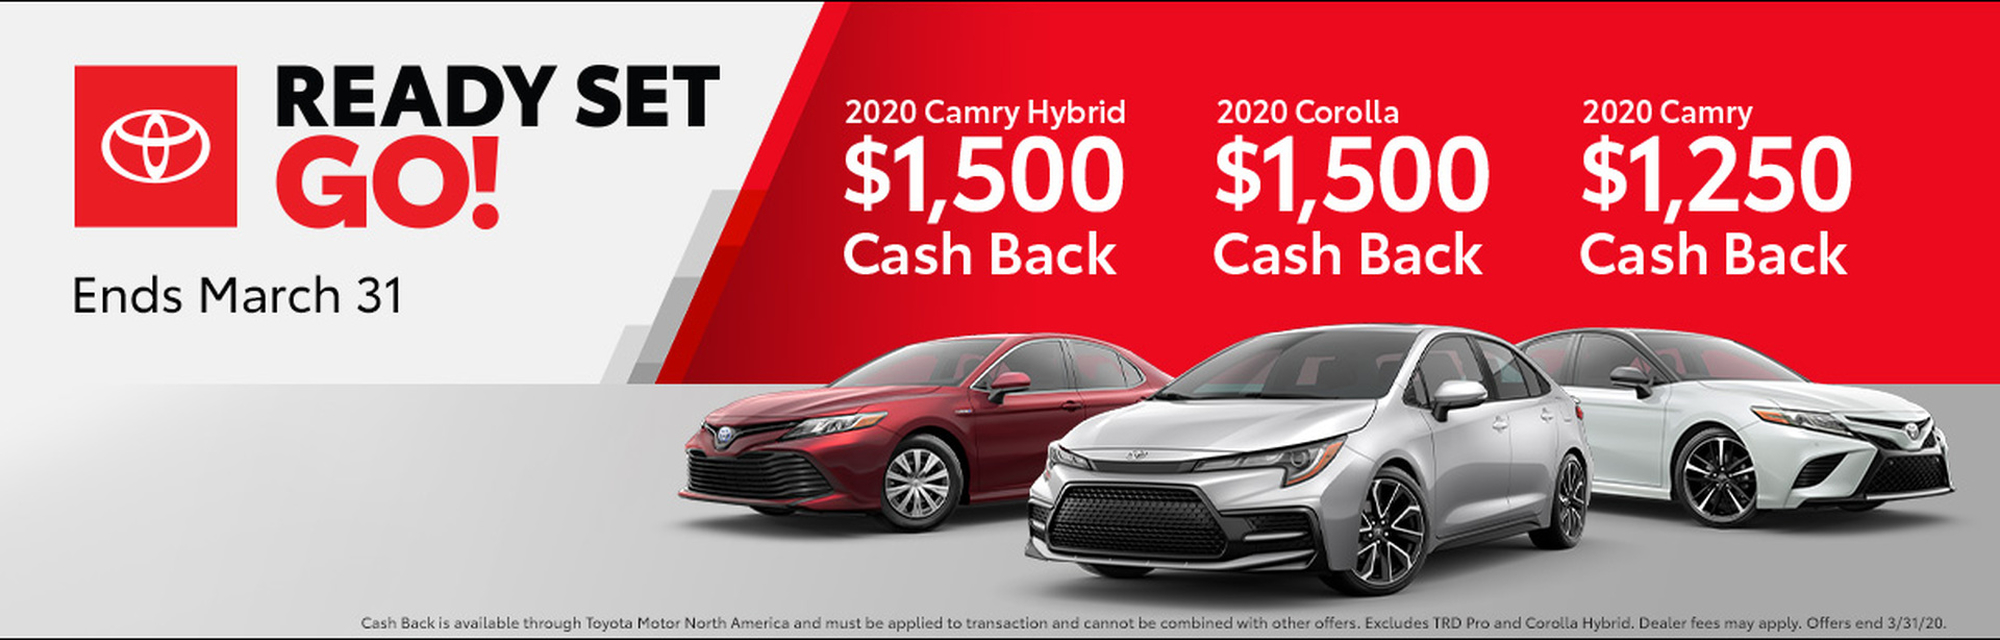 Red Set Go! Sales Event at Piercey Toyota in Milpitas